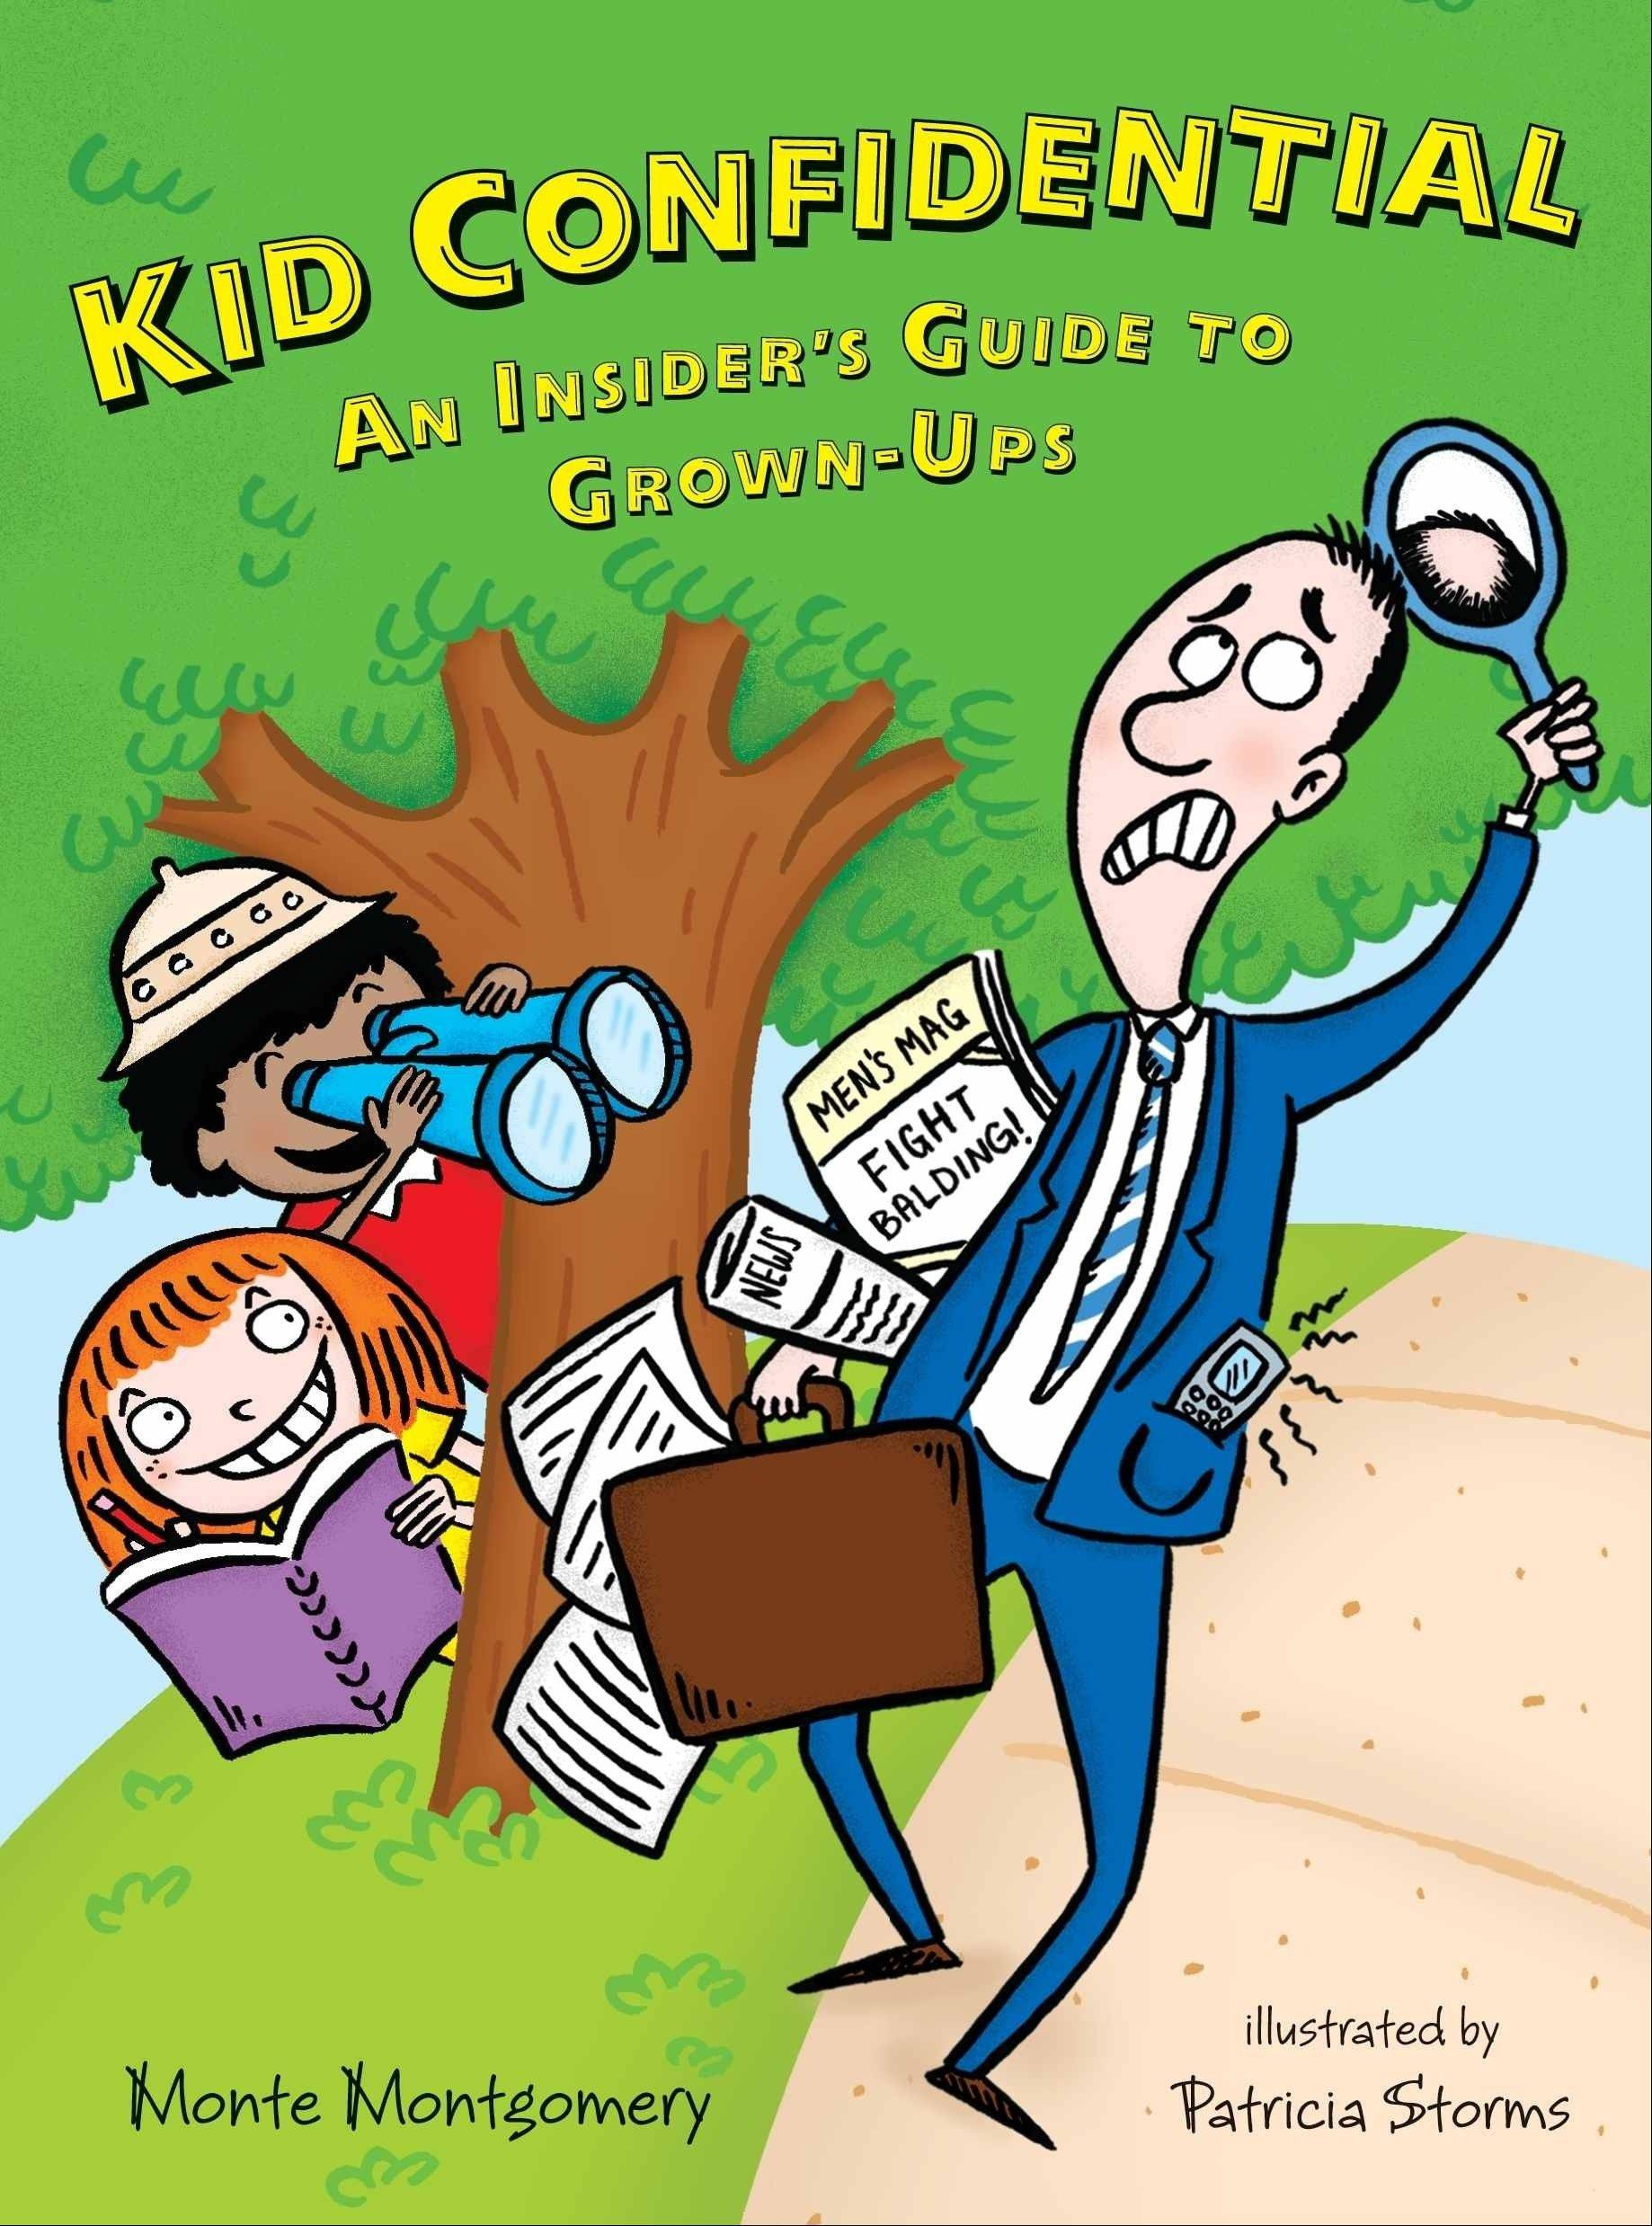 """Kid Confidential: An Insider's Guide to Grown-Ups"" by Monte Montgomery, illustrated by Patricia Storms (Walker & Company, 2012), $8.99, 150 pages."